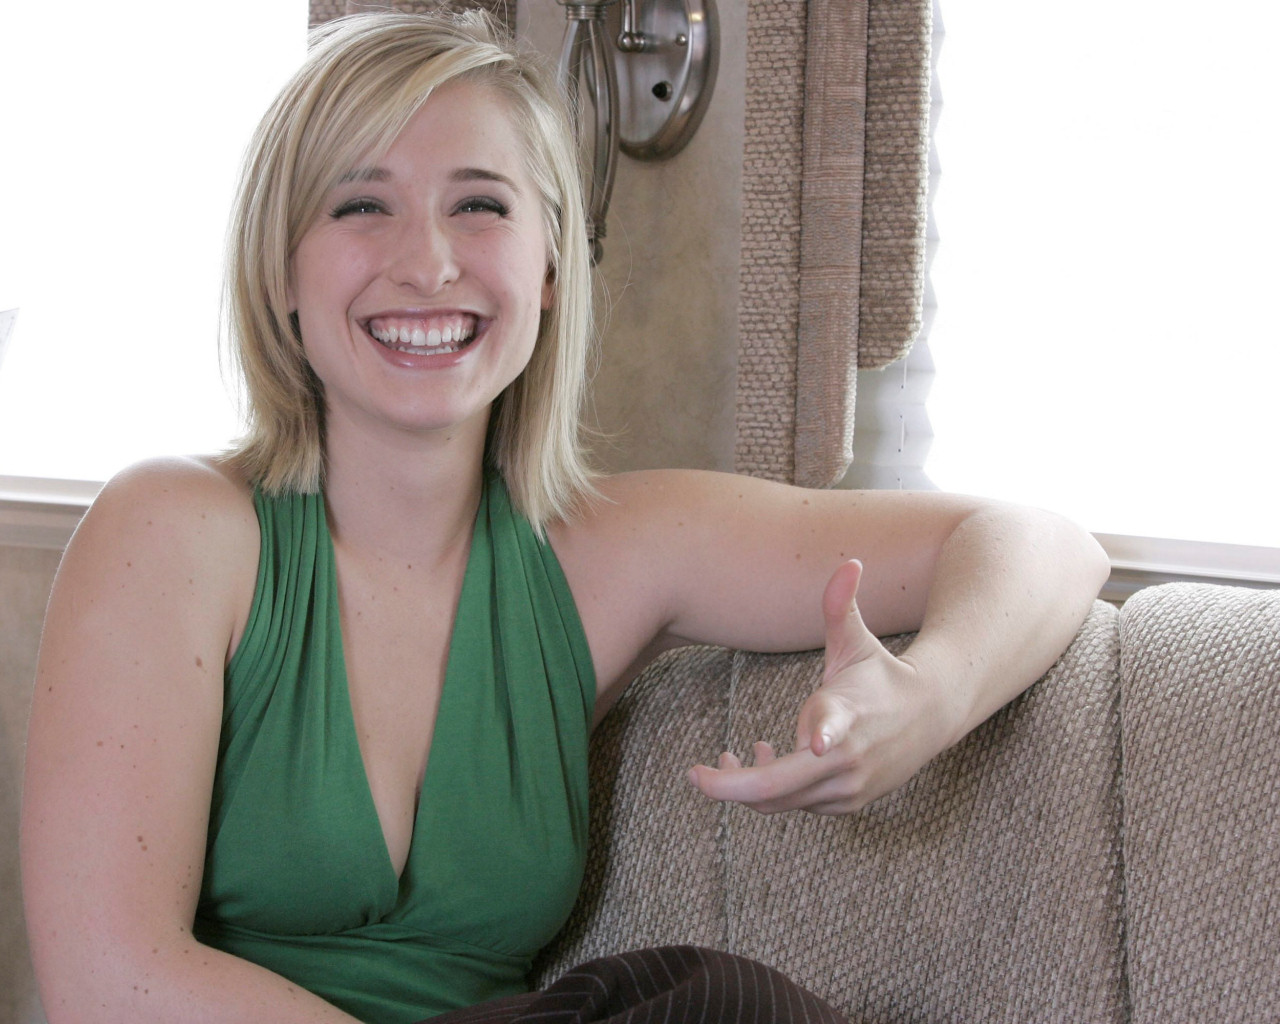 35 Hot Pictures Of Allison Mack - Extremely Cute -7087